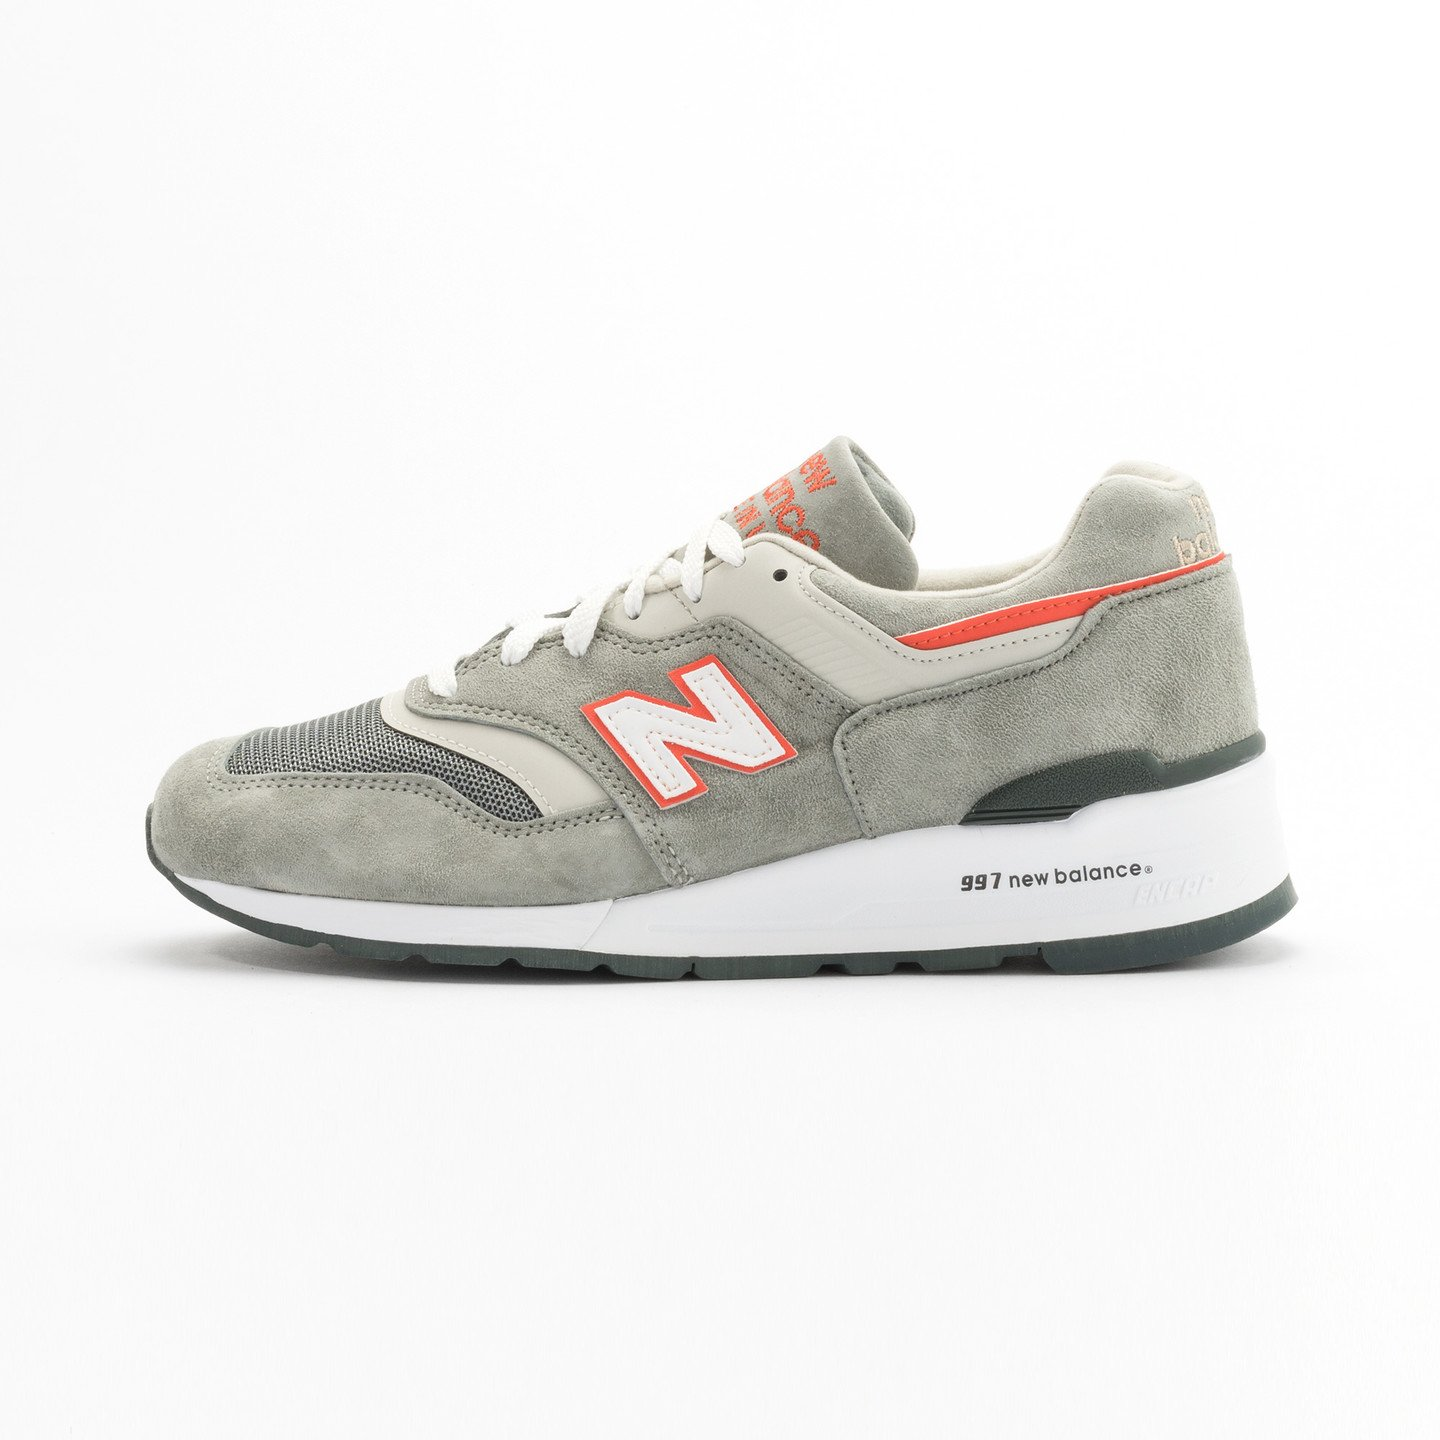 New Balance M997 Made in USA Grey / Orange M997CHT-42.5